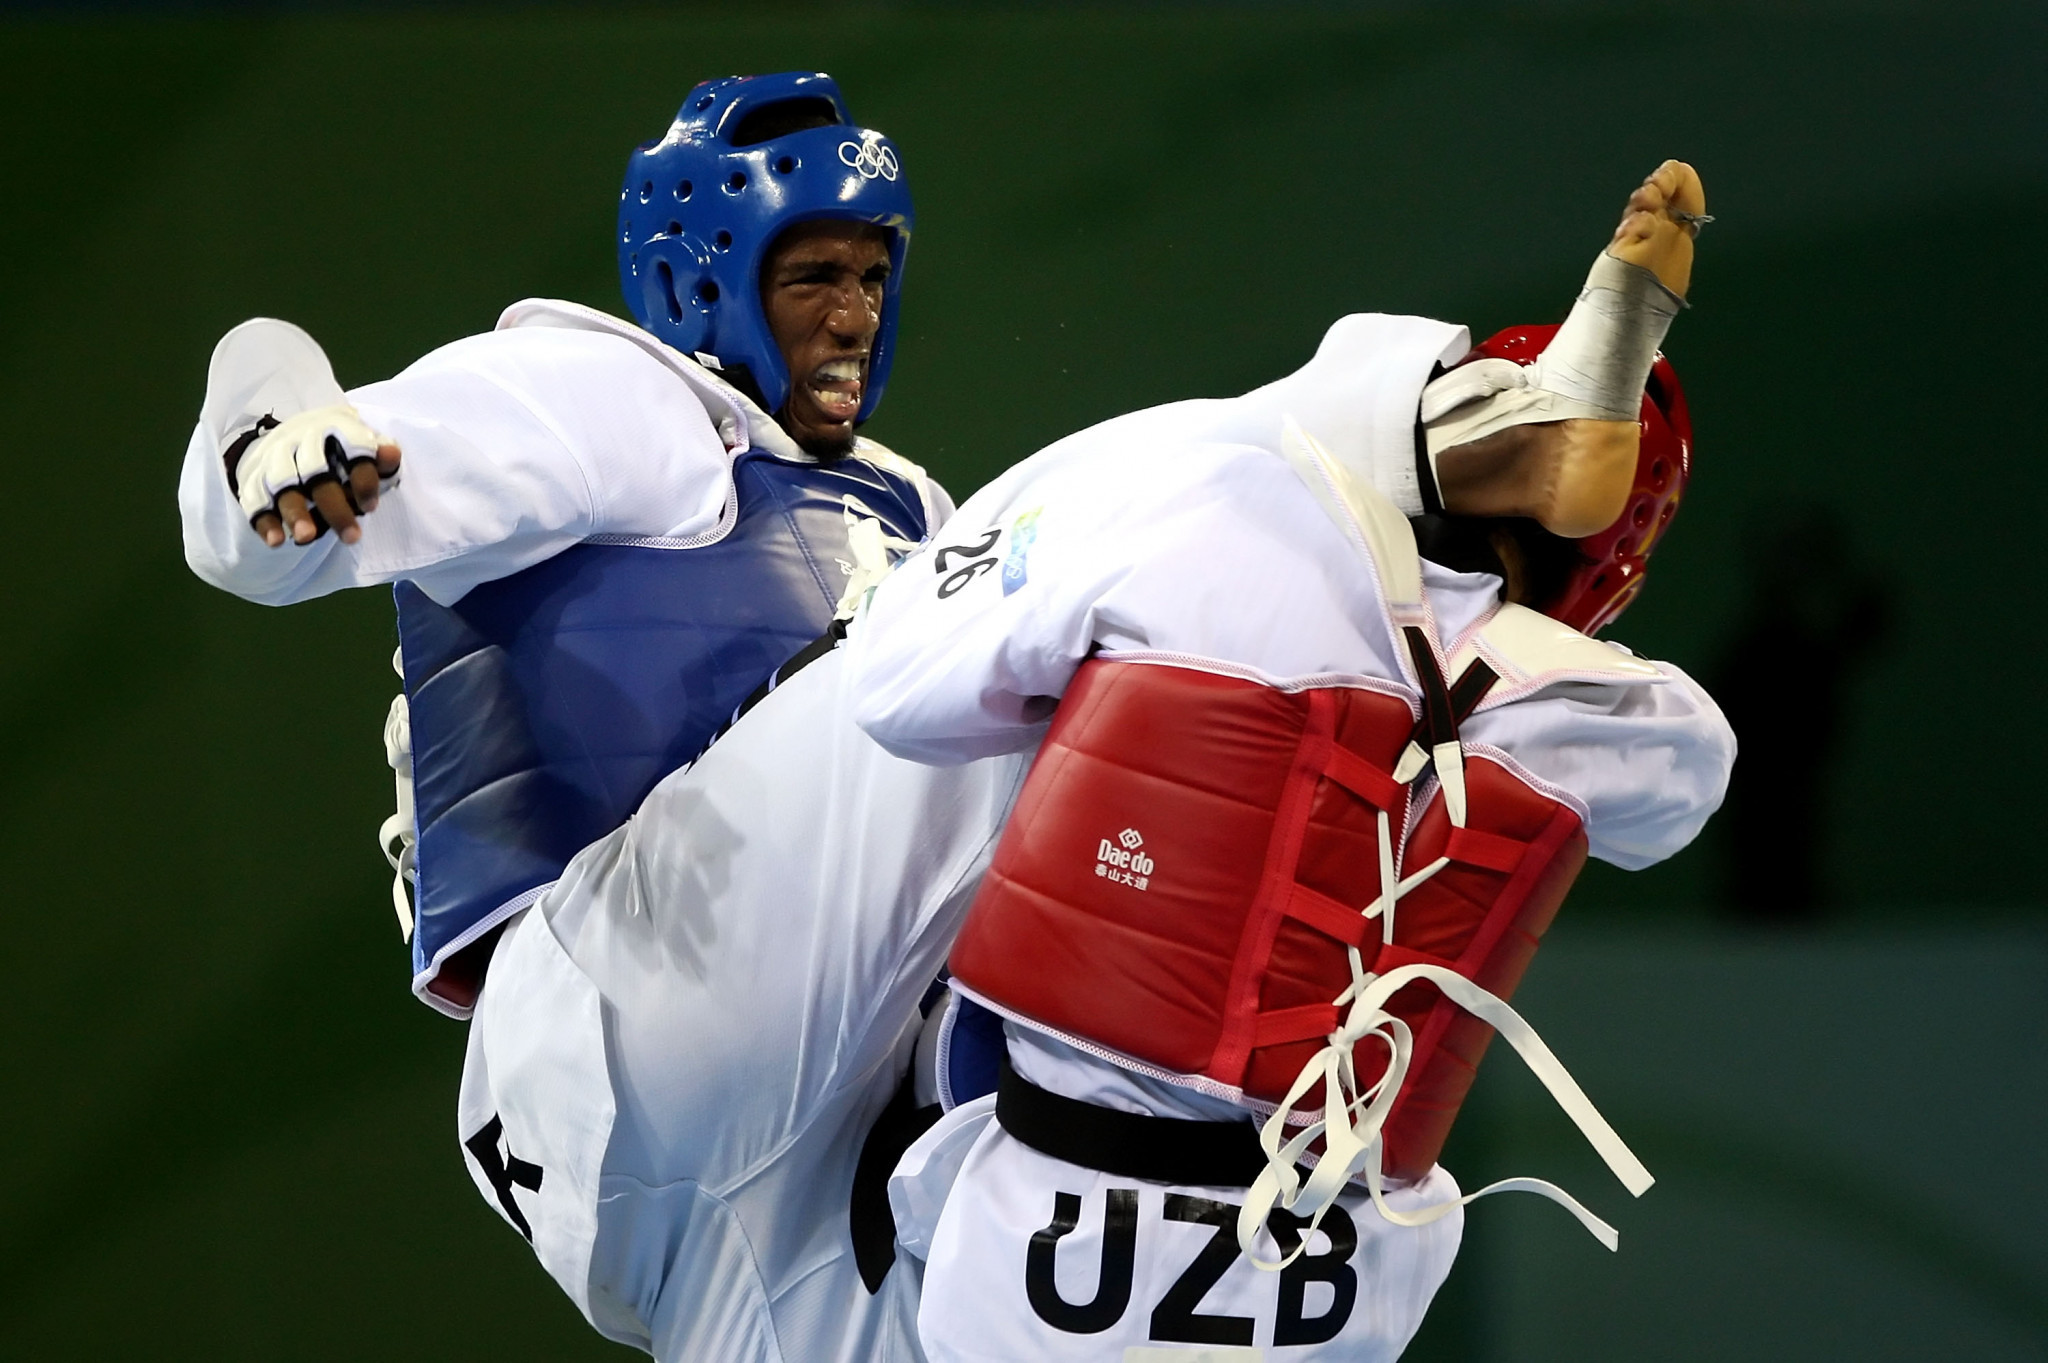 Chika Chukwumerije won Nigeria's first and so far only Olympic Taekwondo medal at Beijing 2008, where he took bronze, and is now the technical director of the Nigerian Taekwondo Federation ©Getty Images